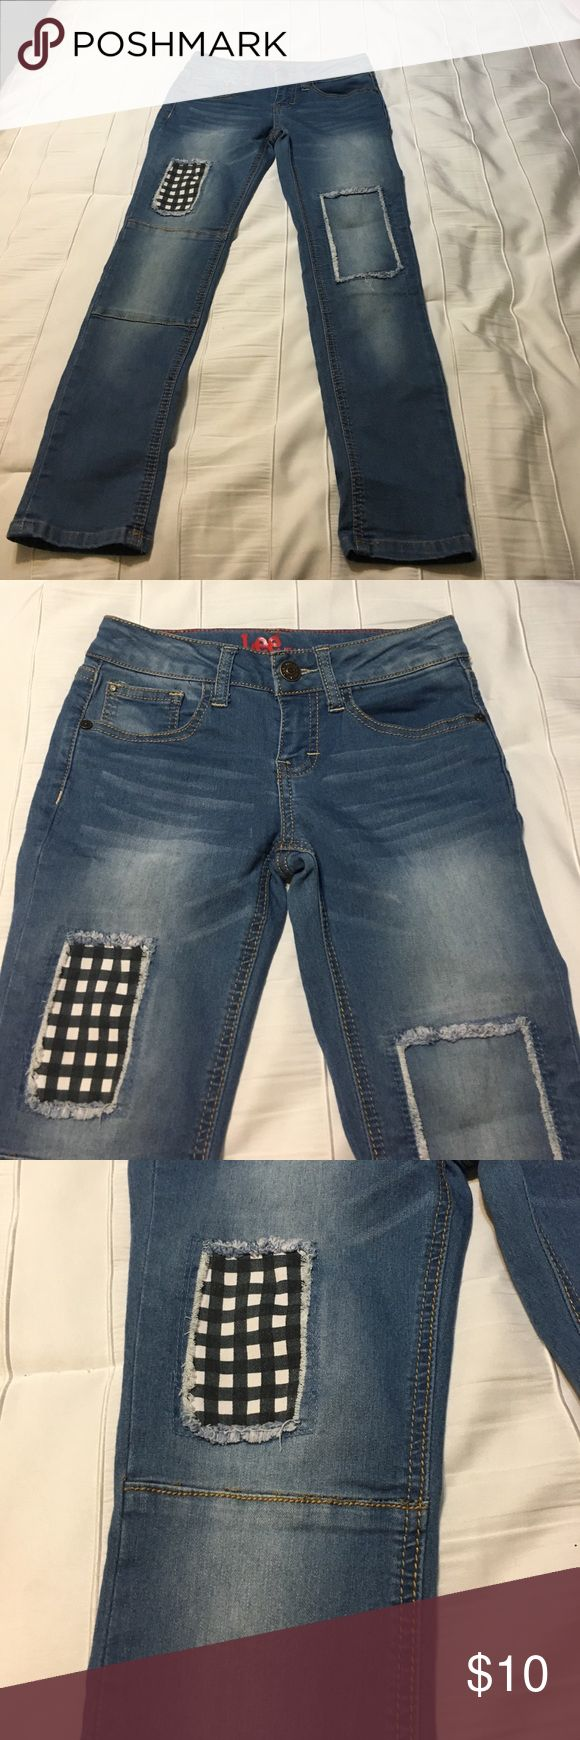 Little girls Lee jeans Good condition size 7 Lee Bottoms Jeans